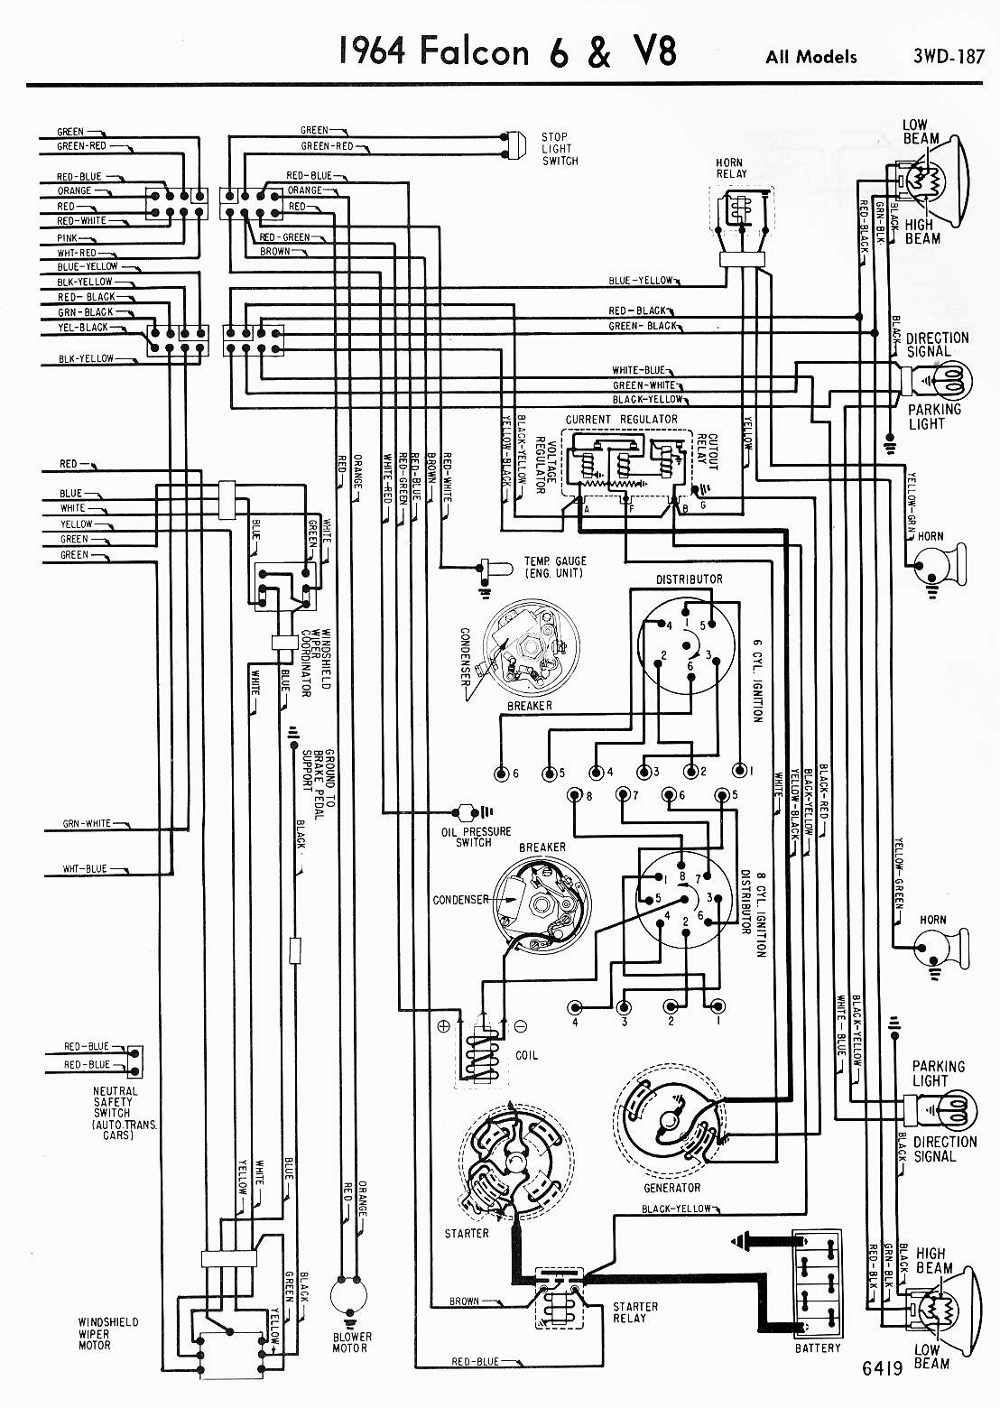 1964 ford falcon wiring diagram wiring diagrams of 1964 ford 6 and v8 falcon all models part 2  [ 1000 x 1408 Pixel ]